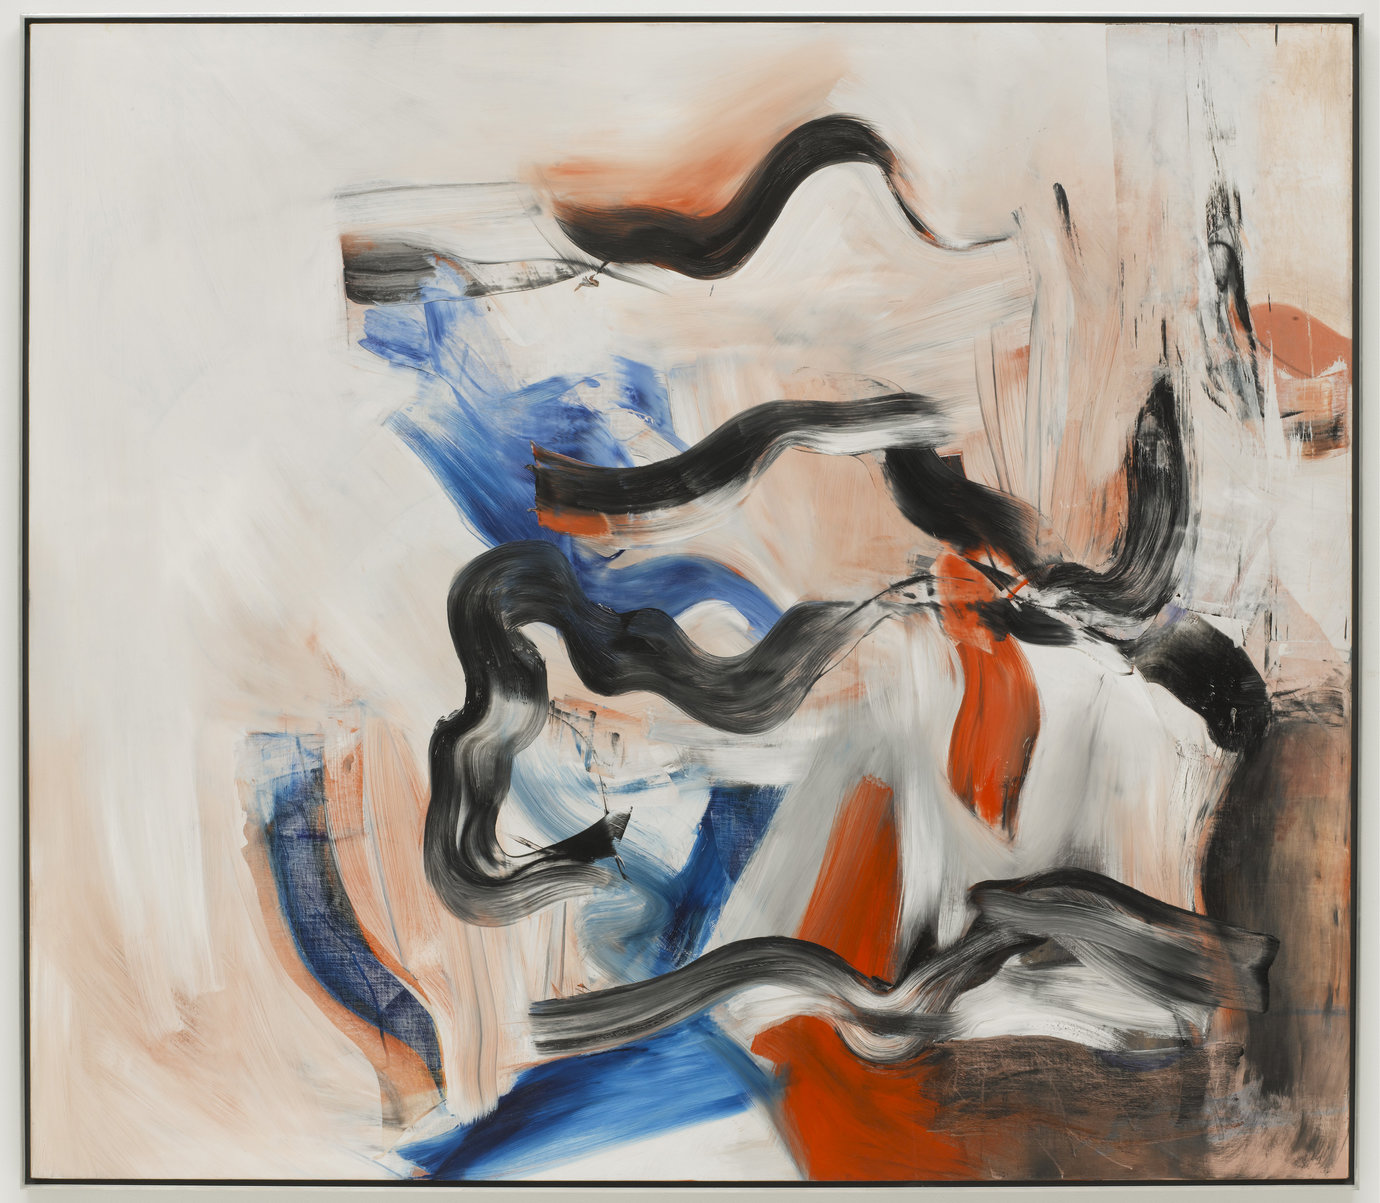 ", 1982. oil on canvas, 70"" x 80"" (177.8 cm x 203.2 cm)."